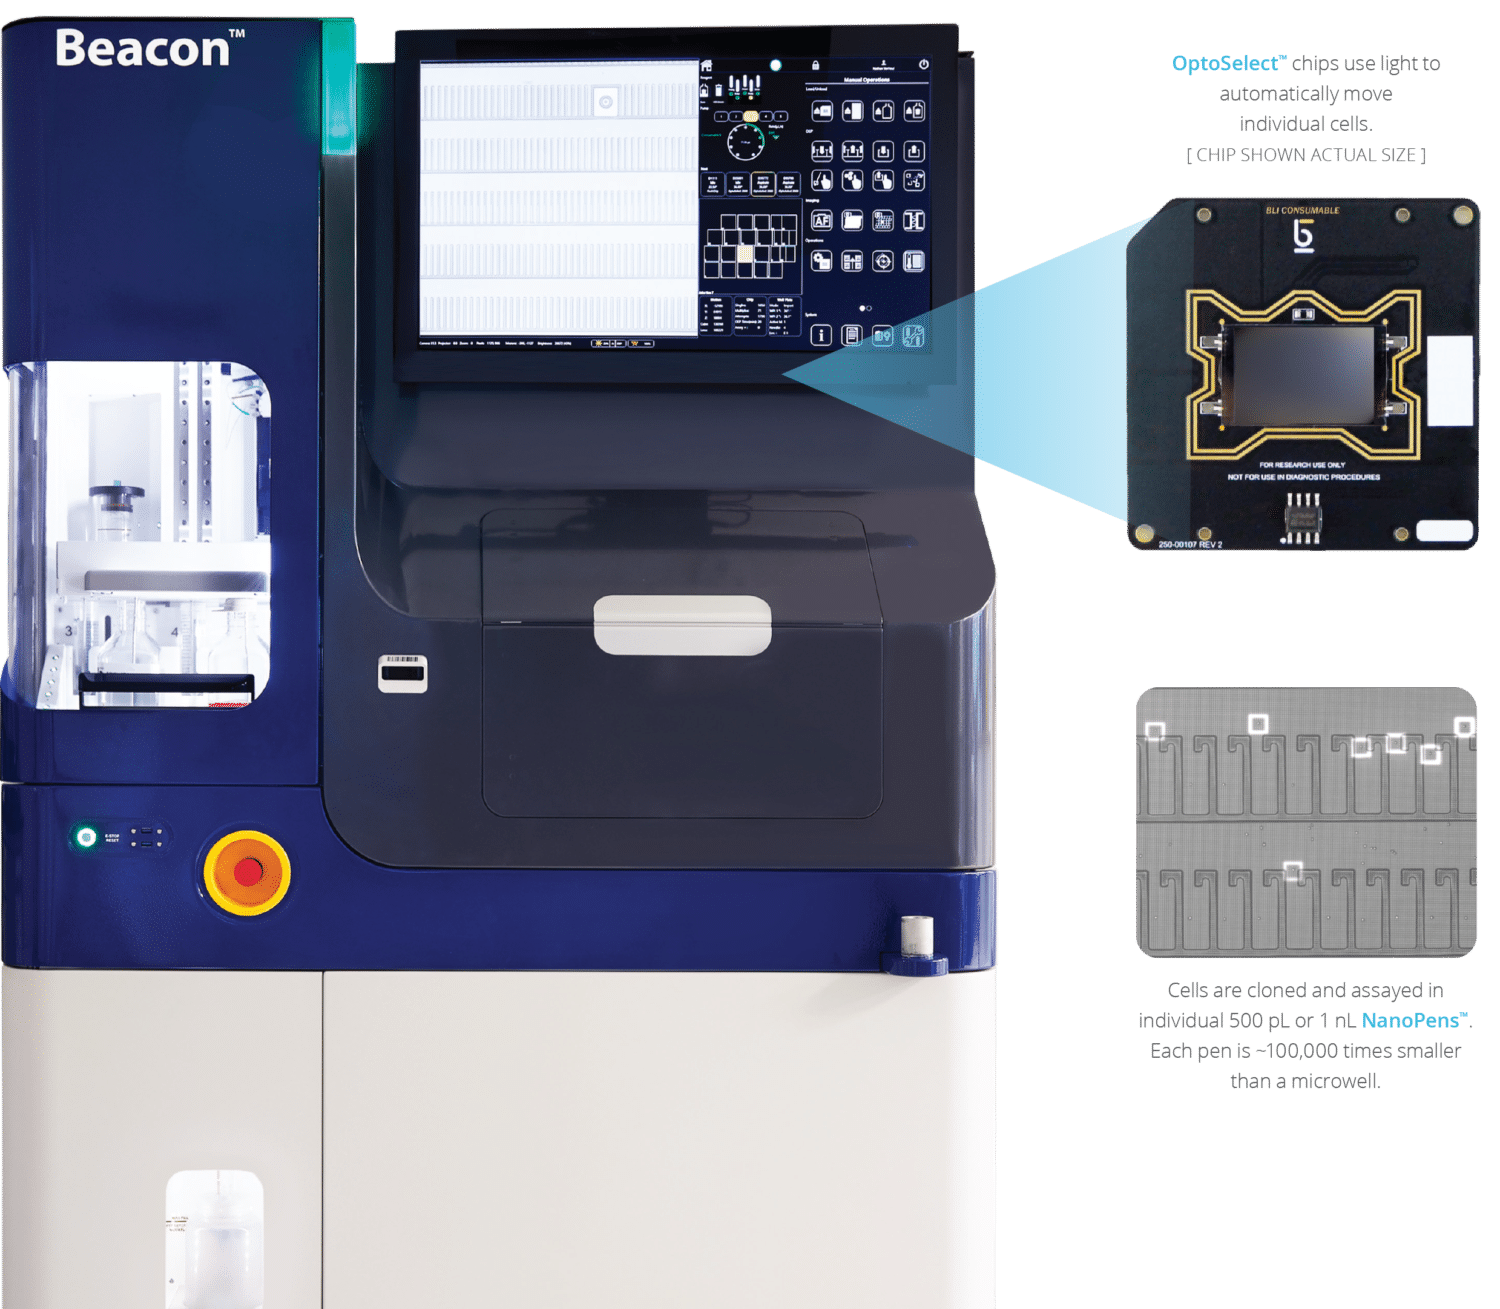 The Beacon System - technology to test and track (human) cells